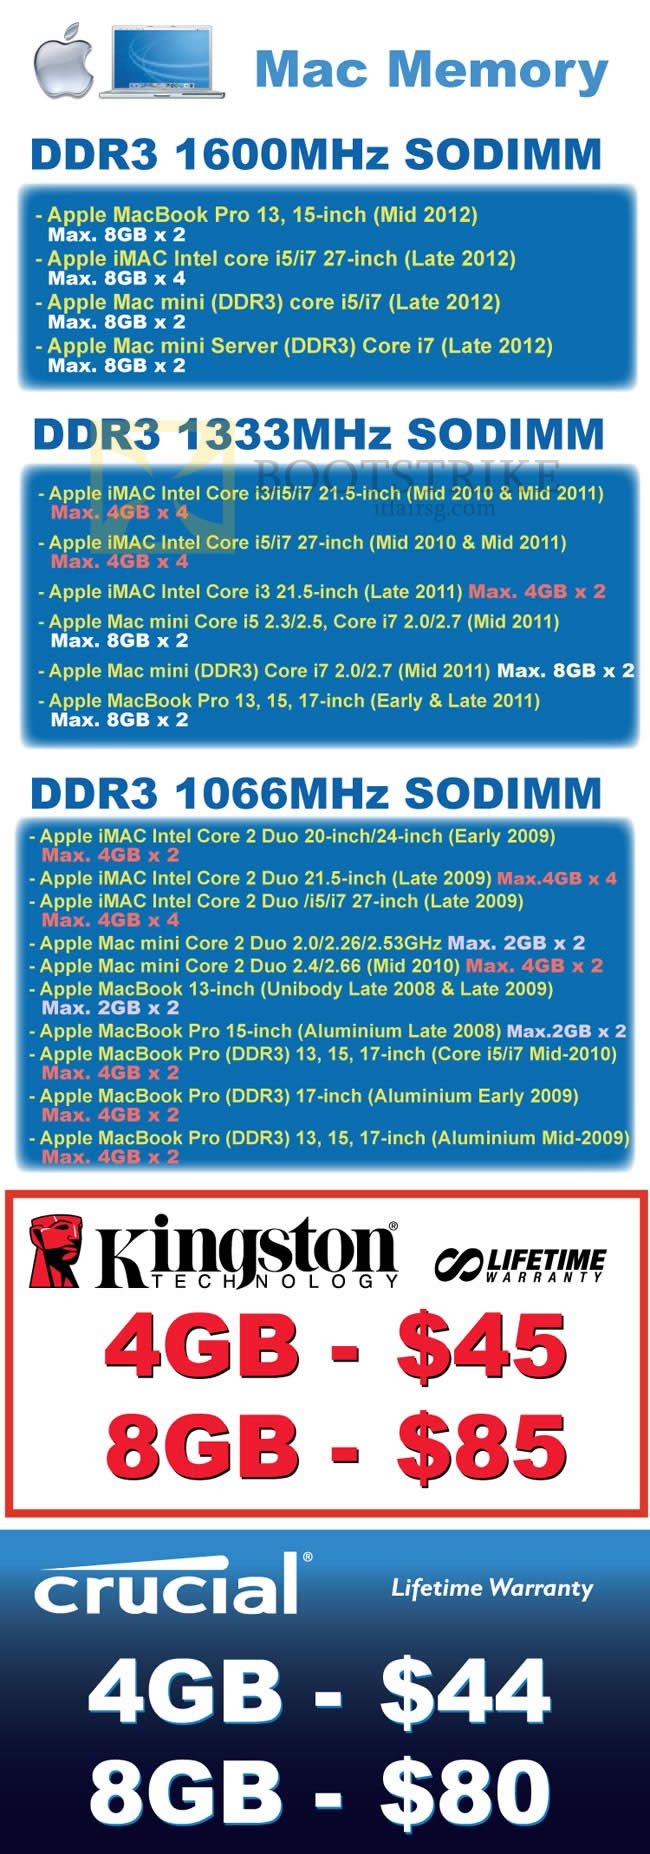 COMEX 2013 price list image brochure of Convergent Mac Memory Apple Macbook, IMac, Kingston, Crucial